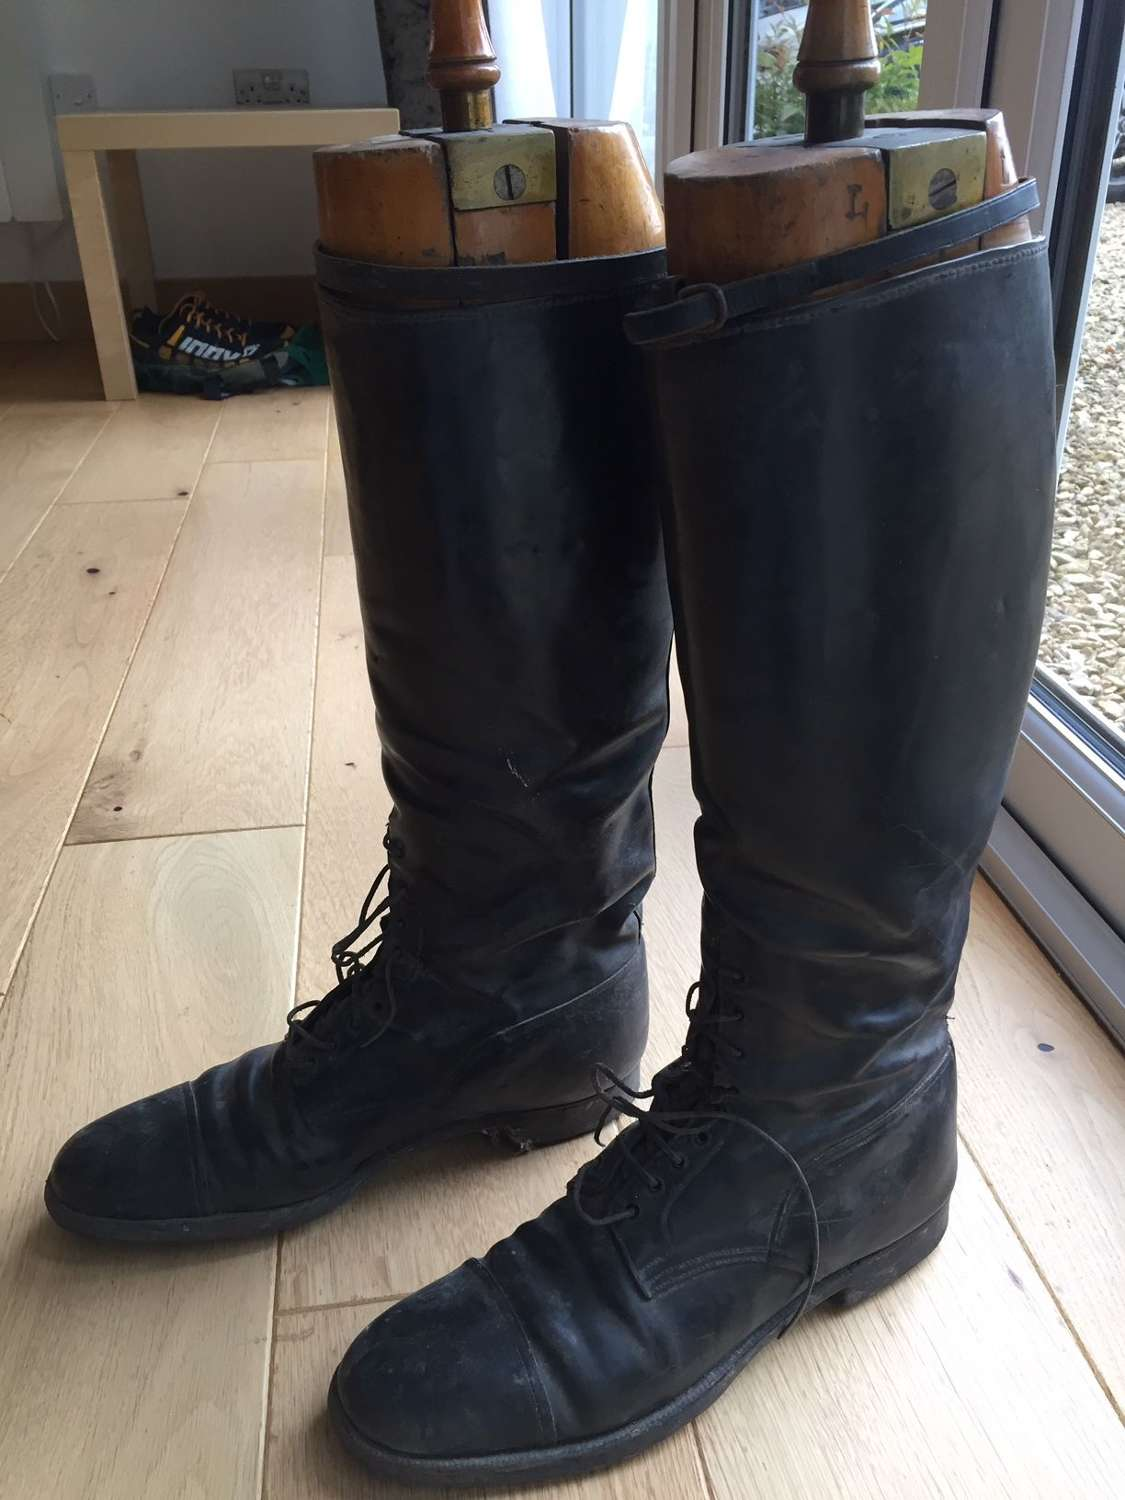 WW1 RA Officer's trench boots